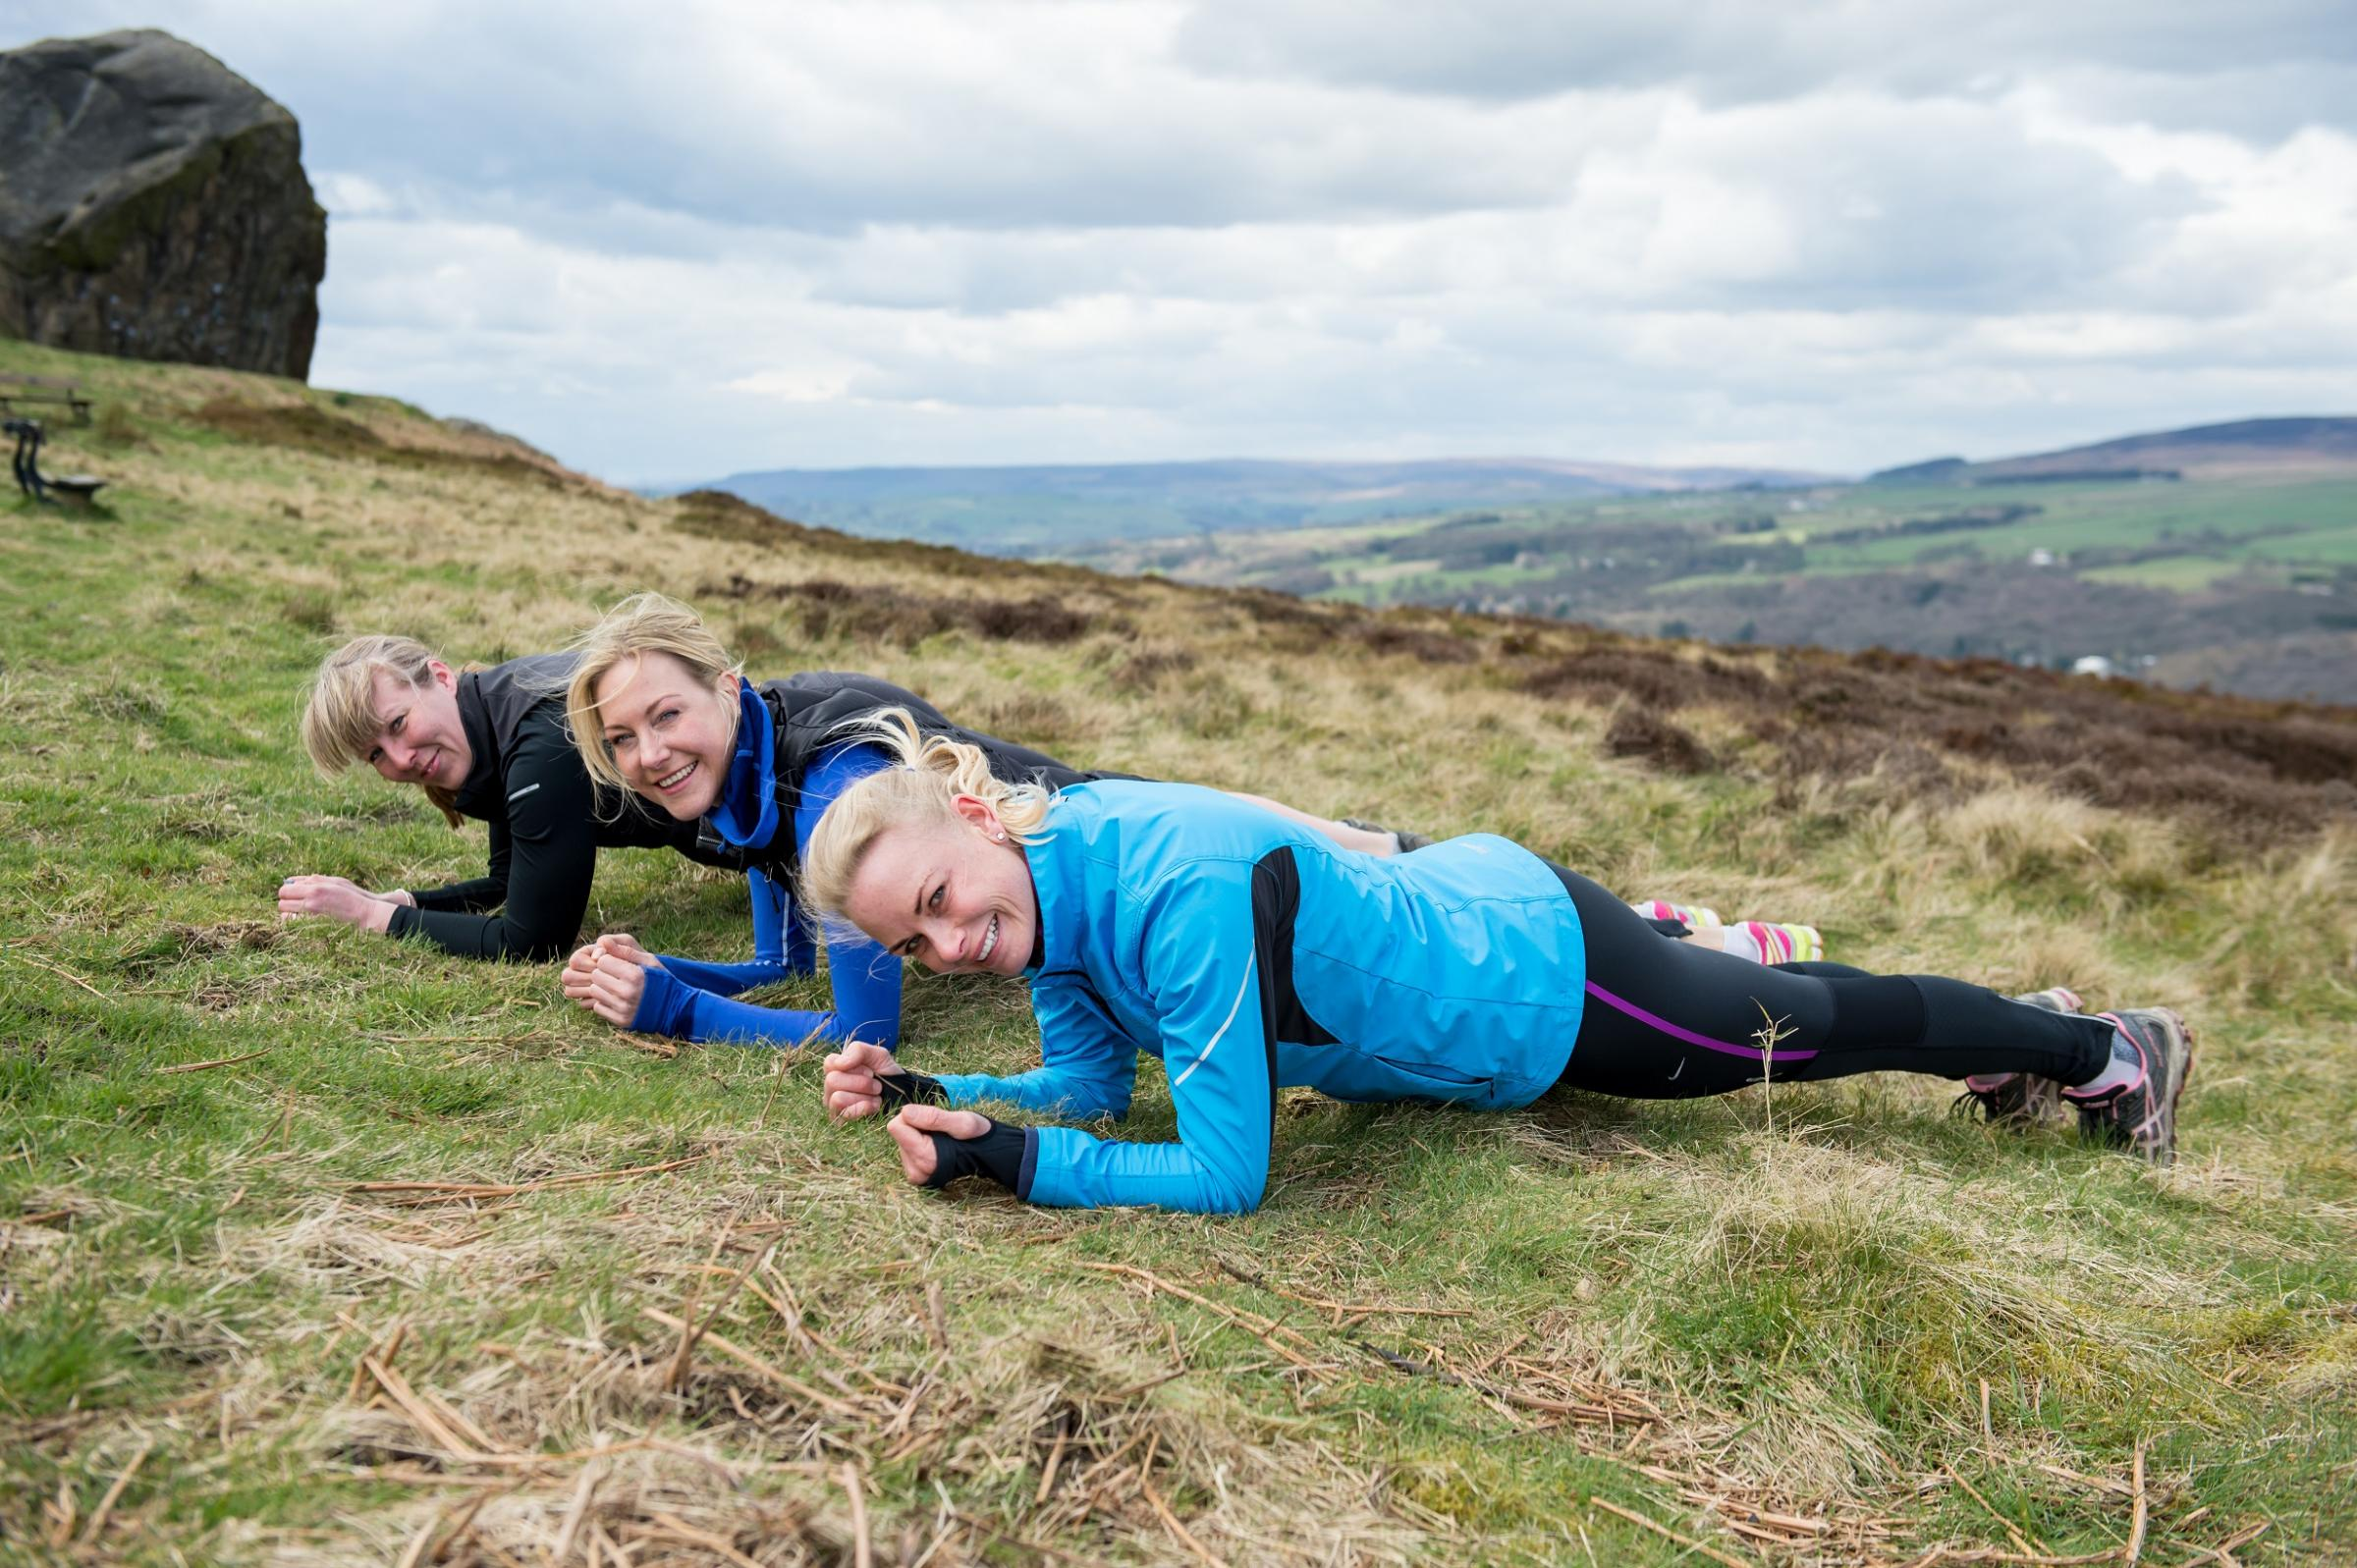 Planking on the Moor are (from left) Sarah Mayrick, Tanya Lindop and Chantelle Scargill